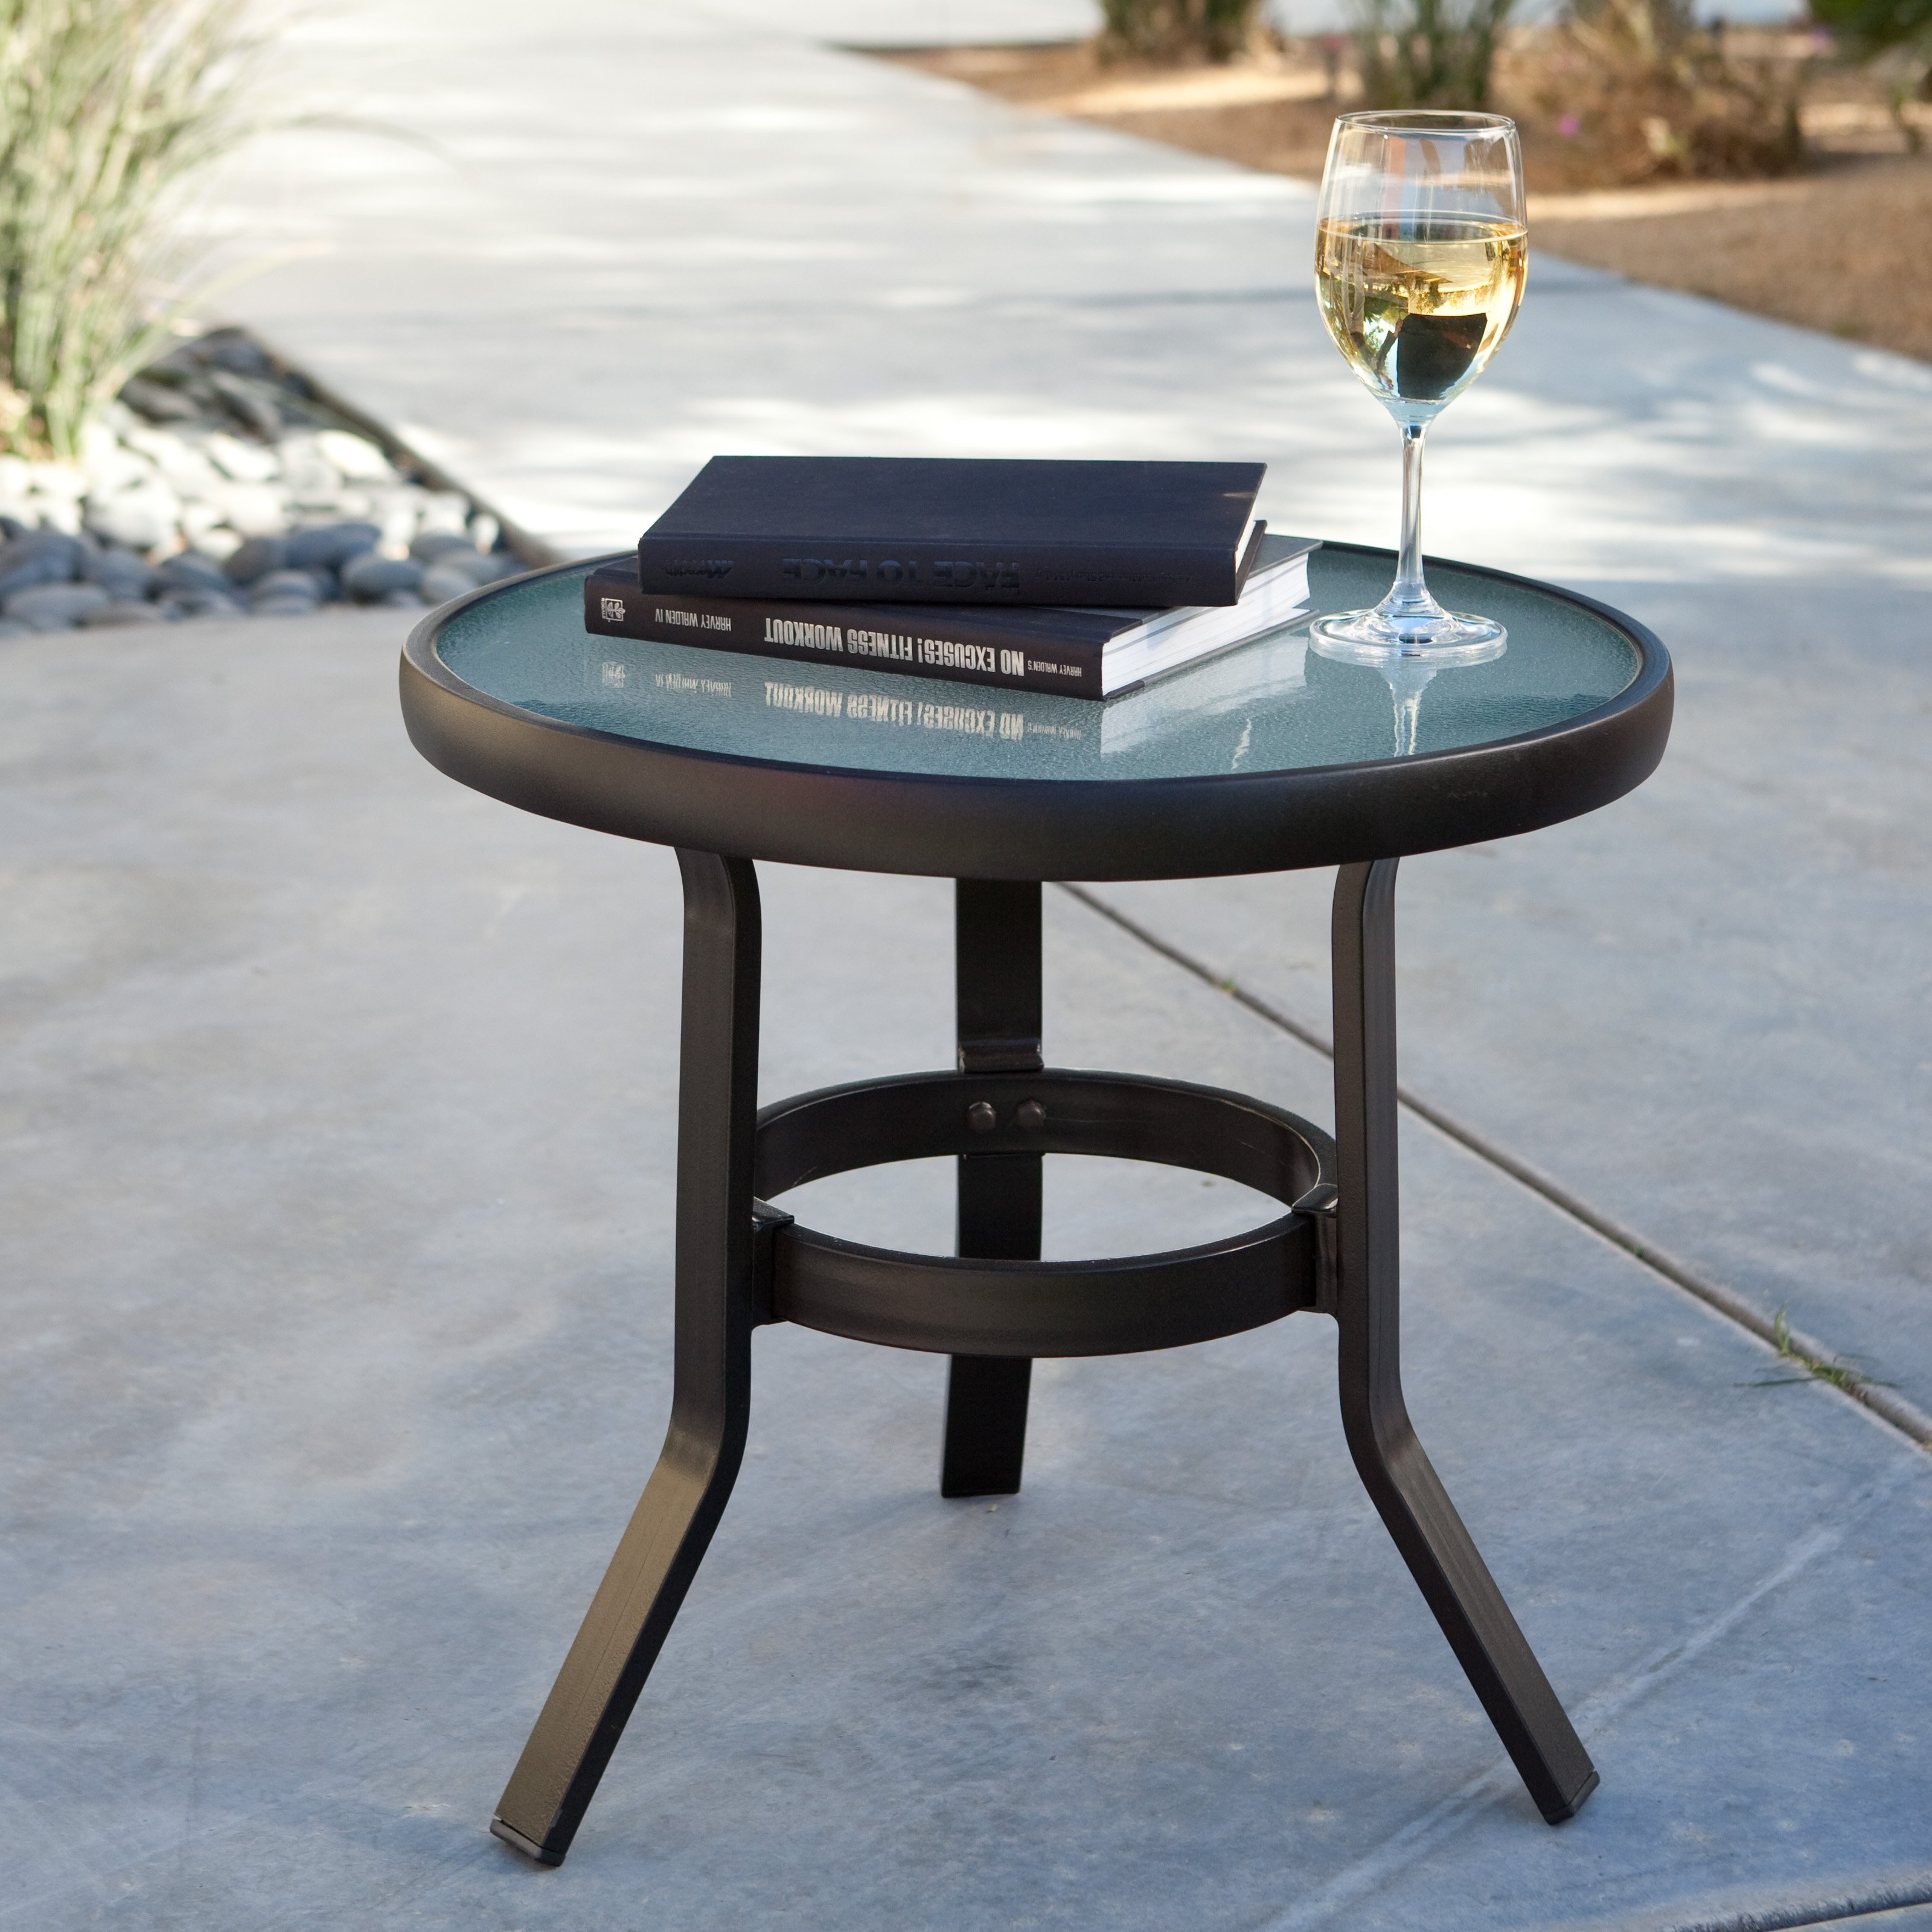 coral coast patio side table accent tables unfinished target outdoor baxter furniture storage cupboard glass end short lamps wooden garden box threshold trim with baskets